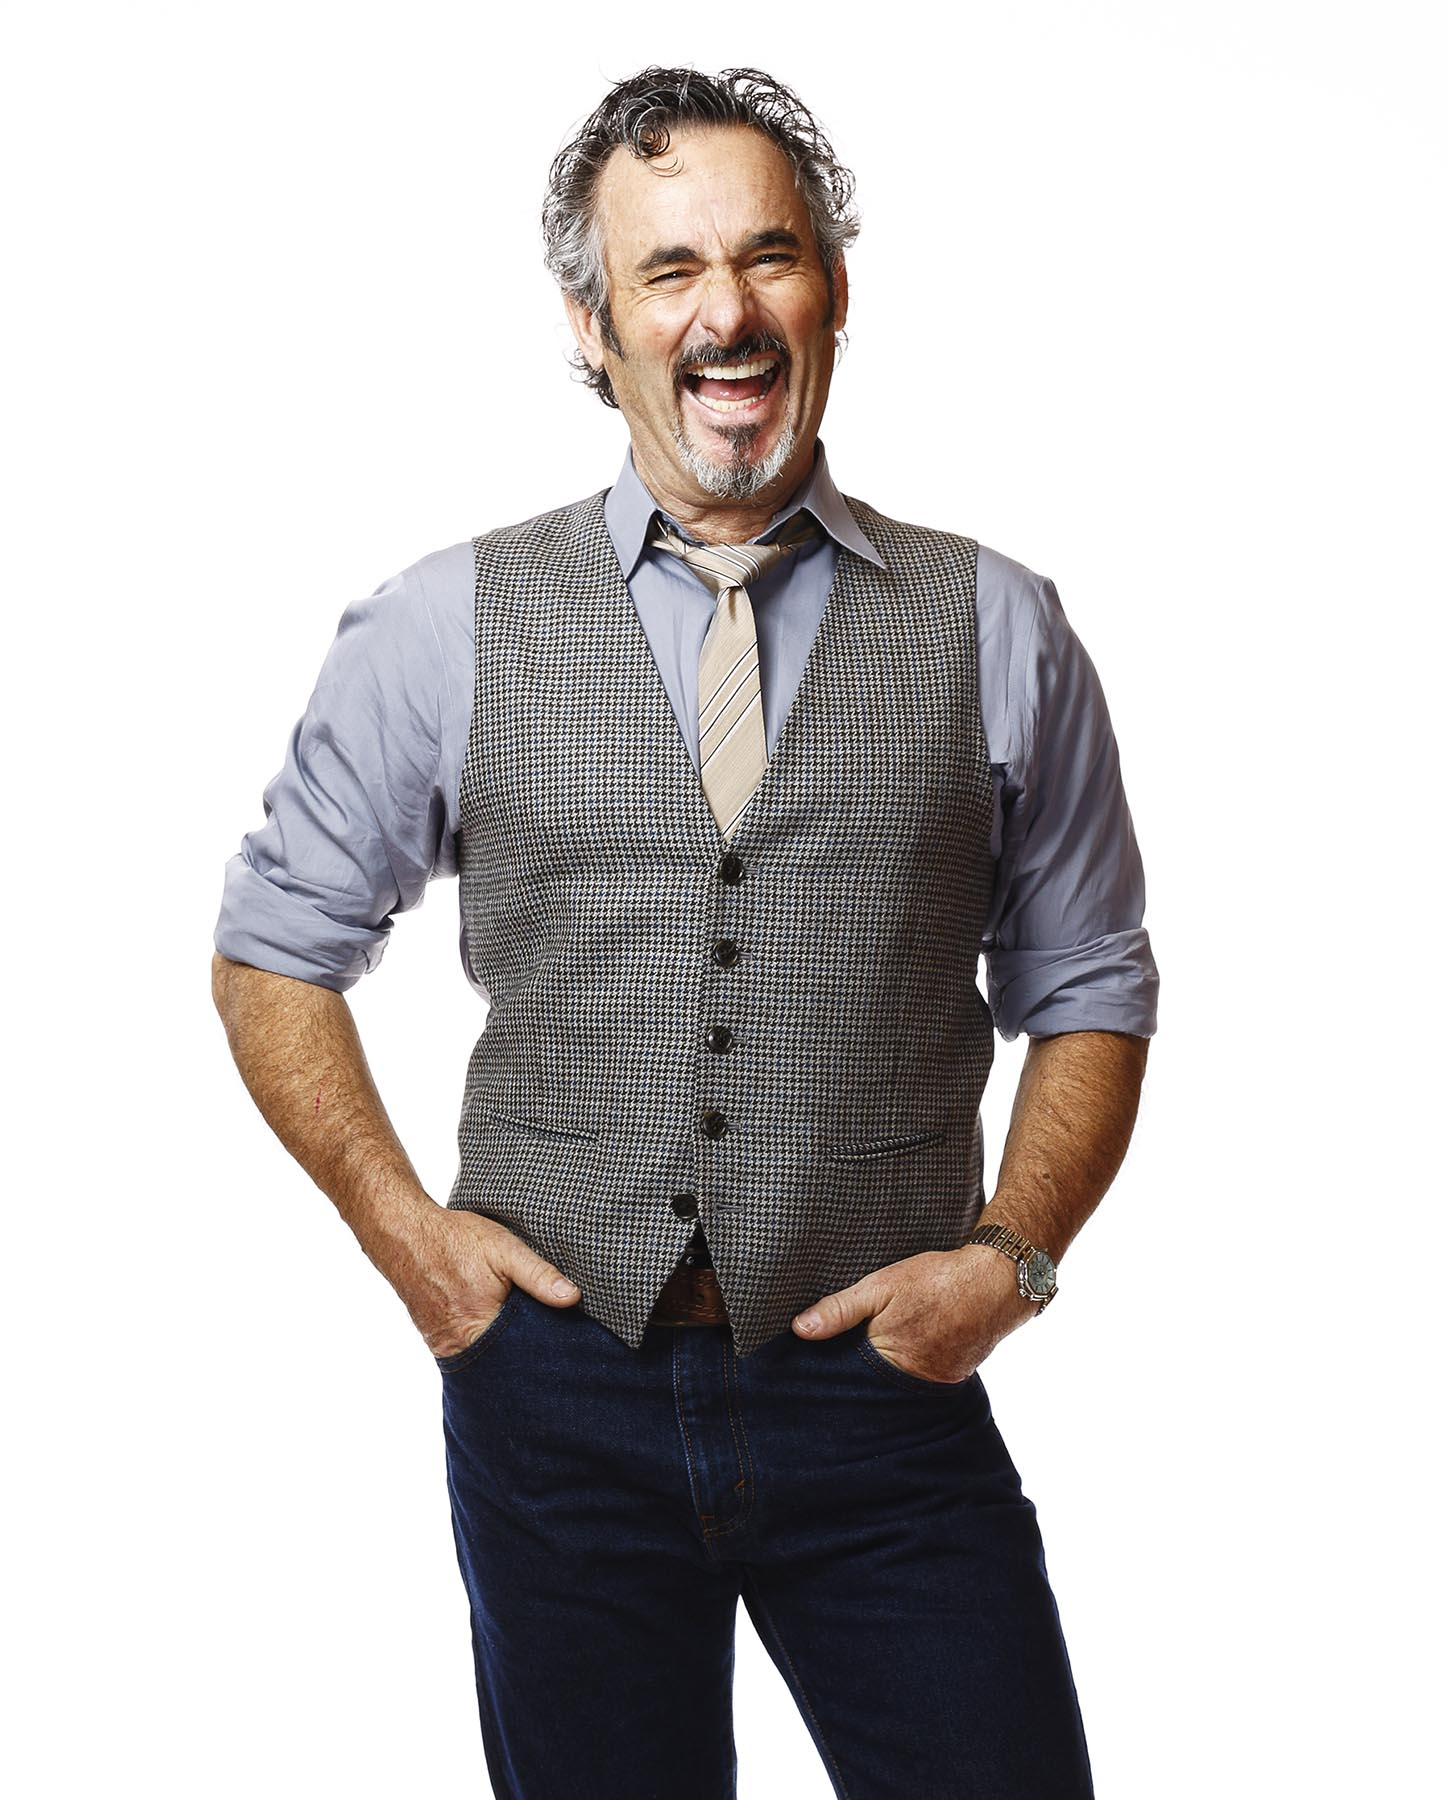 Orlando photographer Bob Croslin David Feherty for Golf Digest